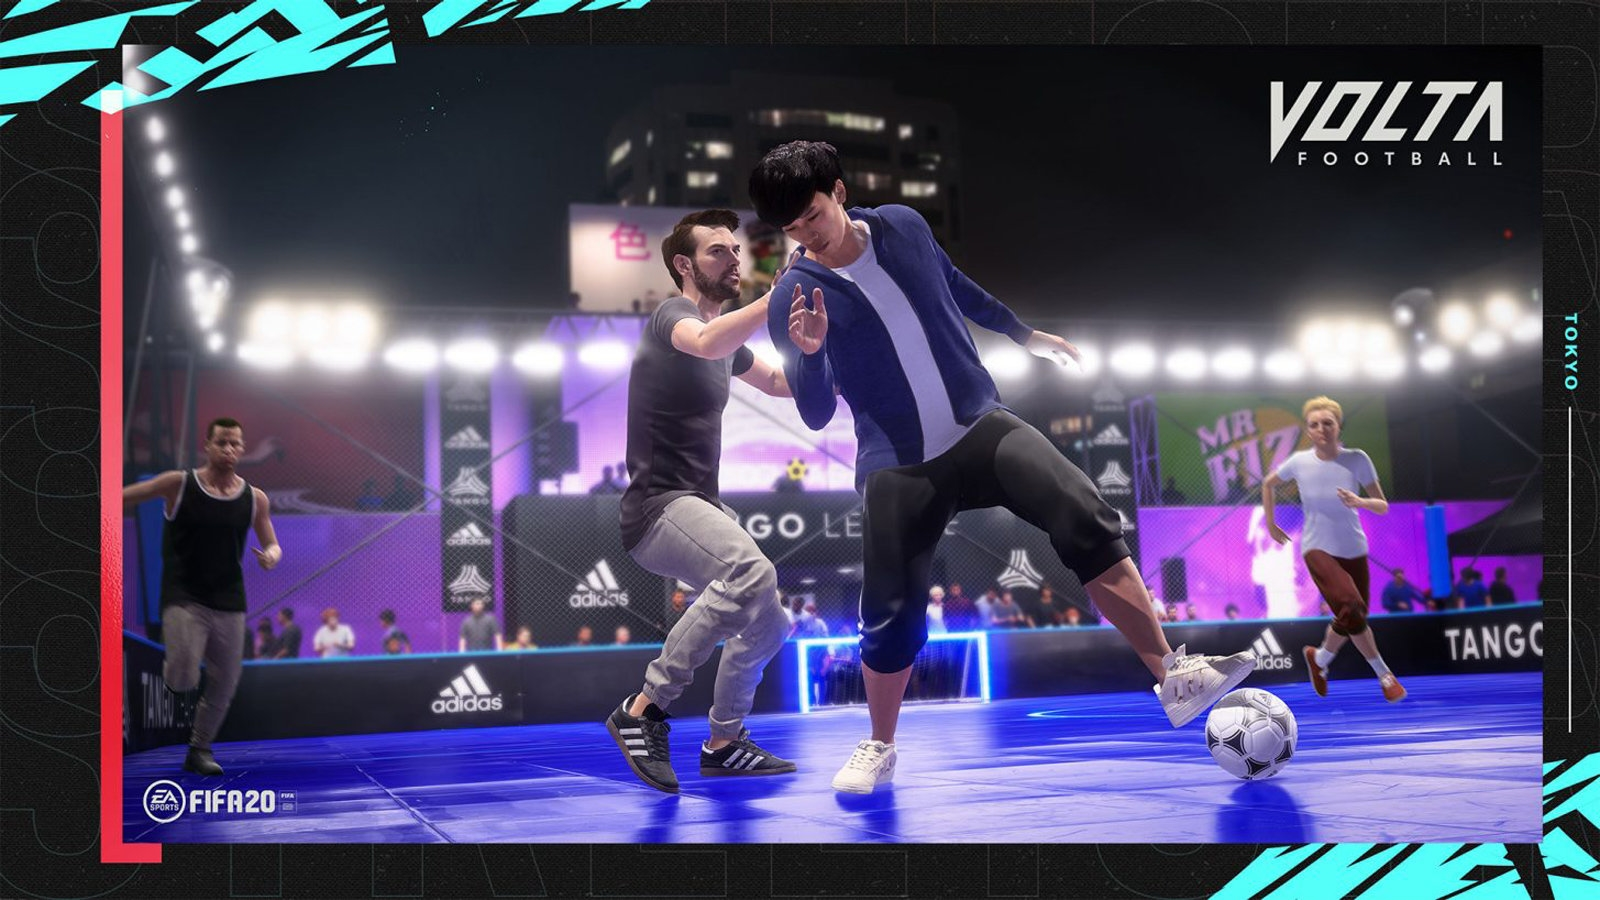 'FIFA 20' revives 'Street' soccer games on September 27th | DeviceDaily.com